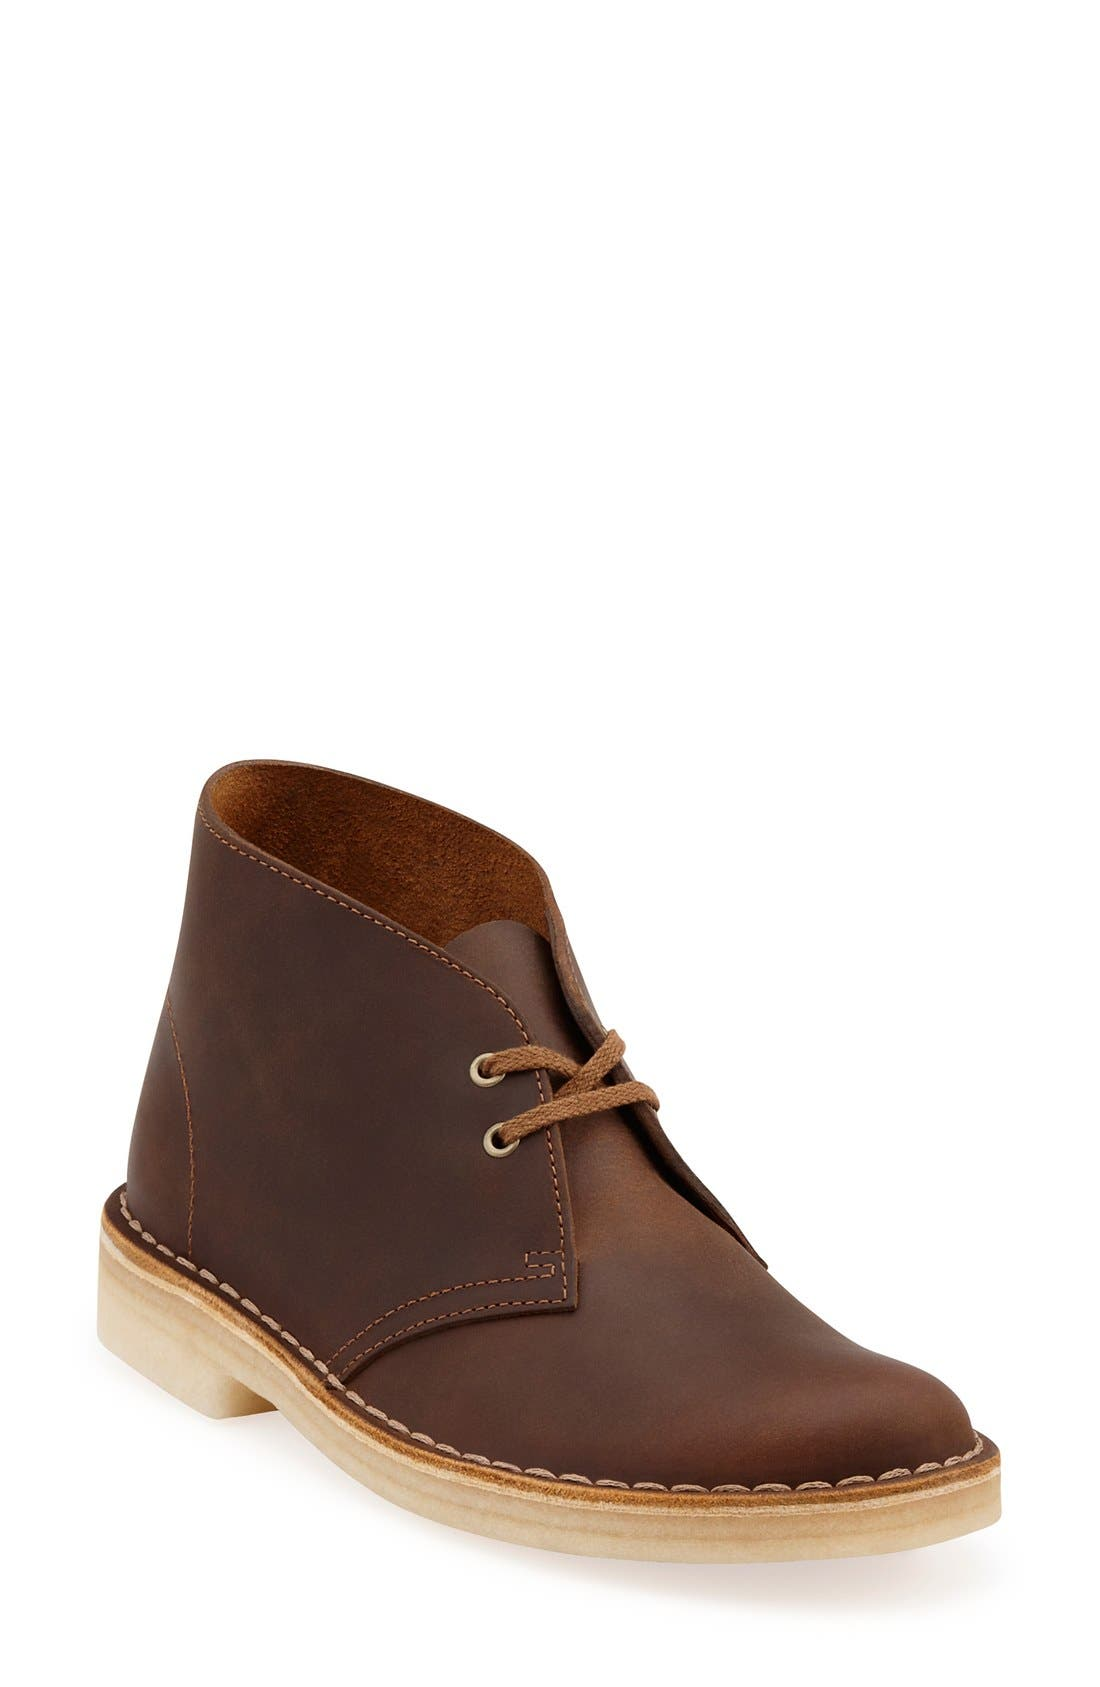 CLARKS<SUP>®</SUP>, Desert ChukkaBoot, Main thumbnail 1, color, BEESWAX LEATHER